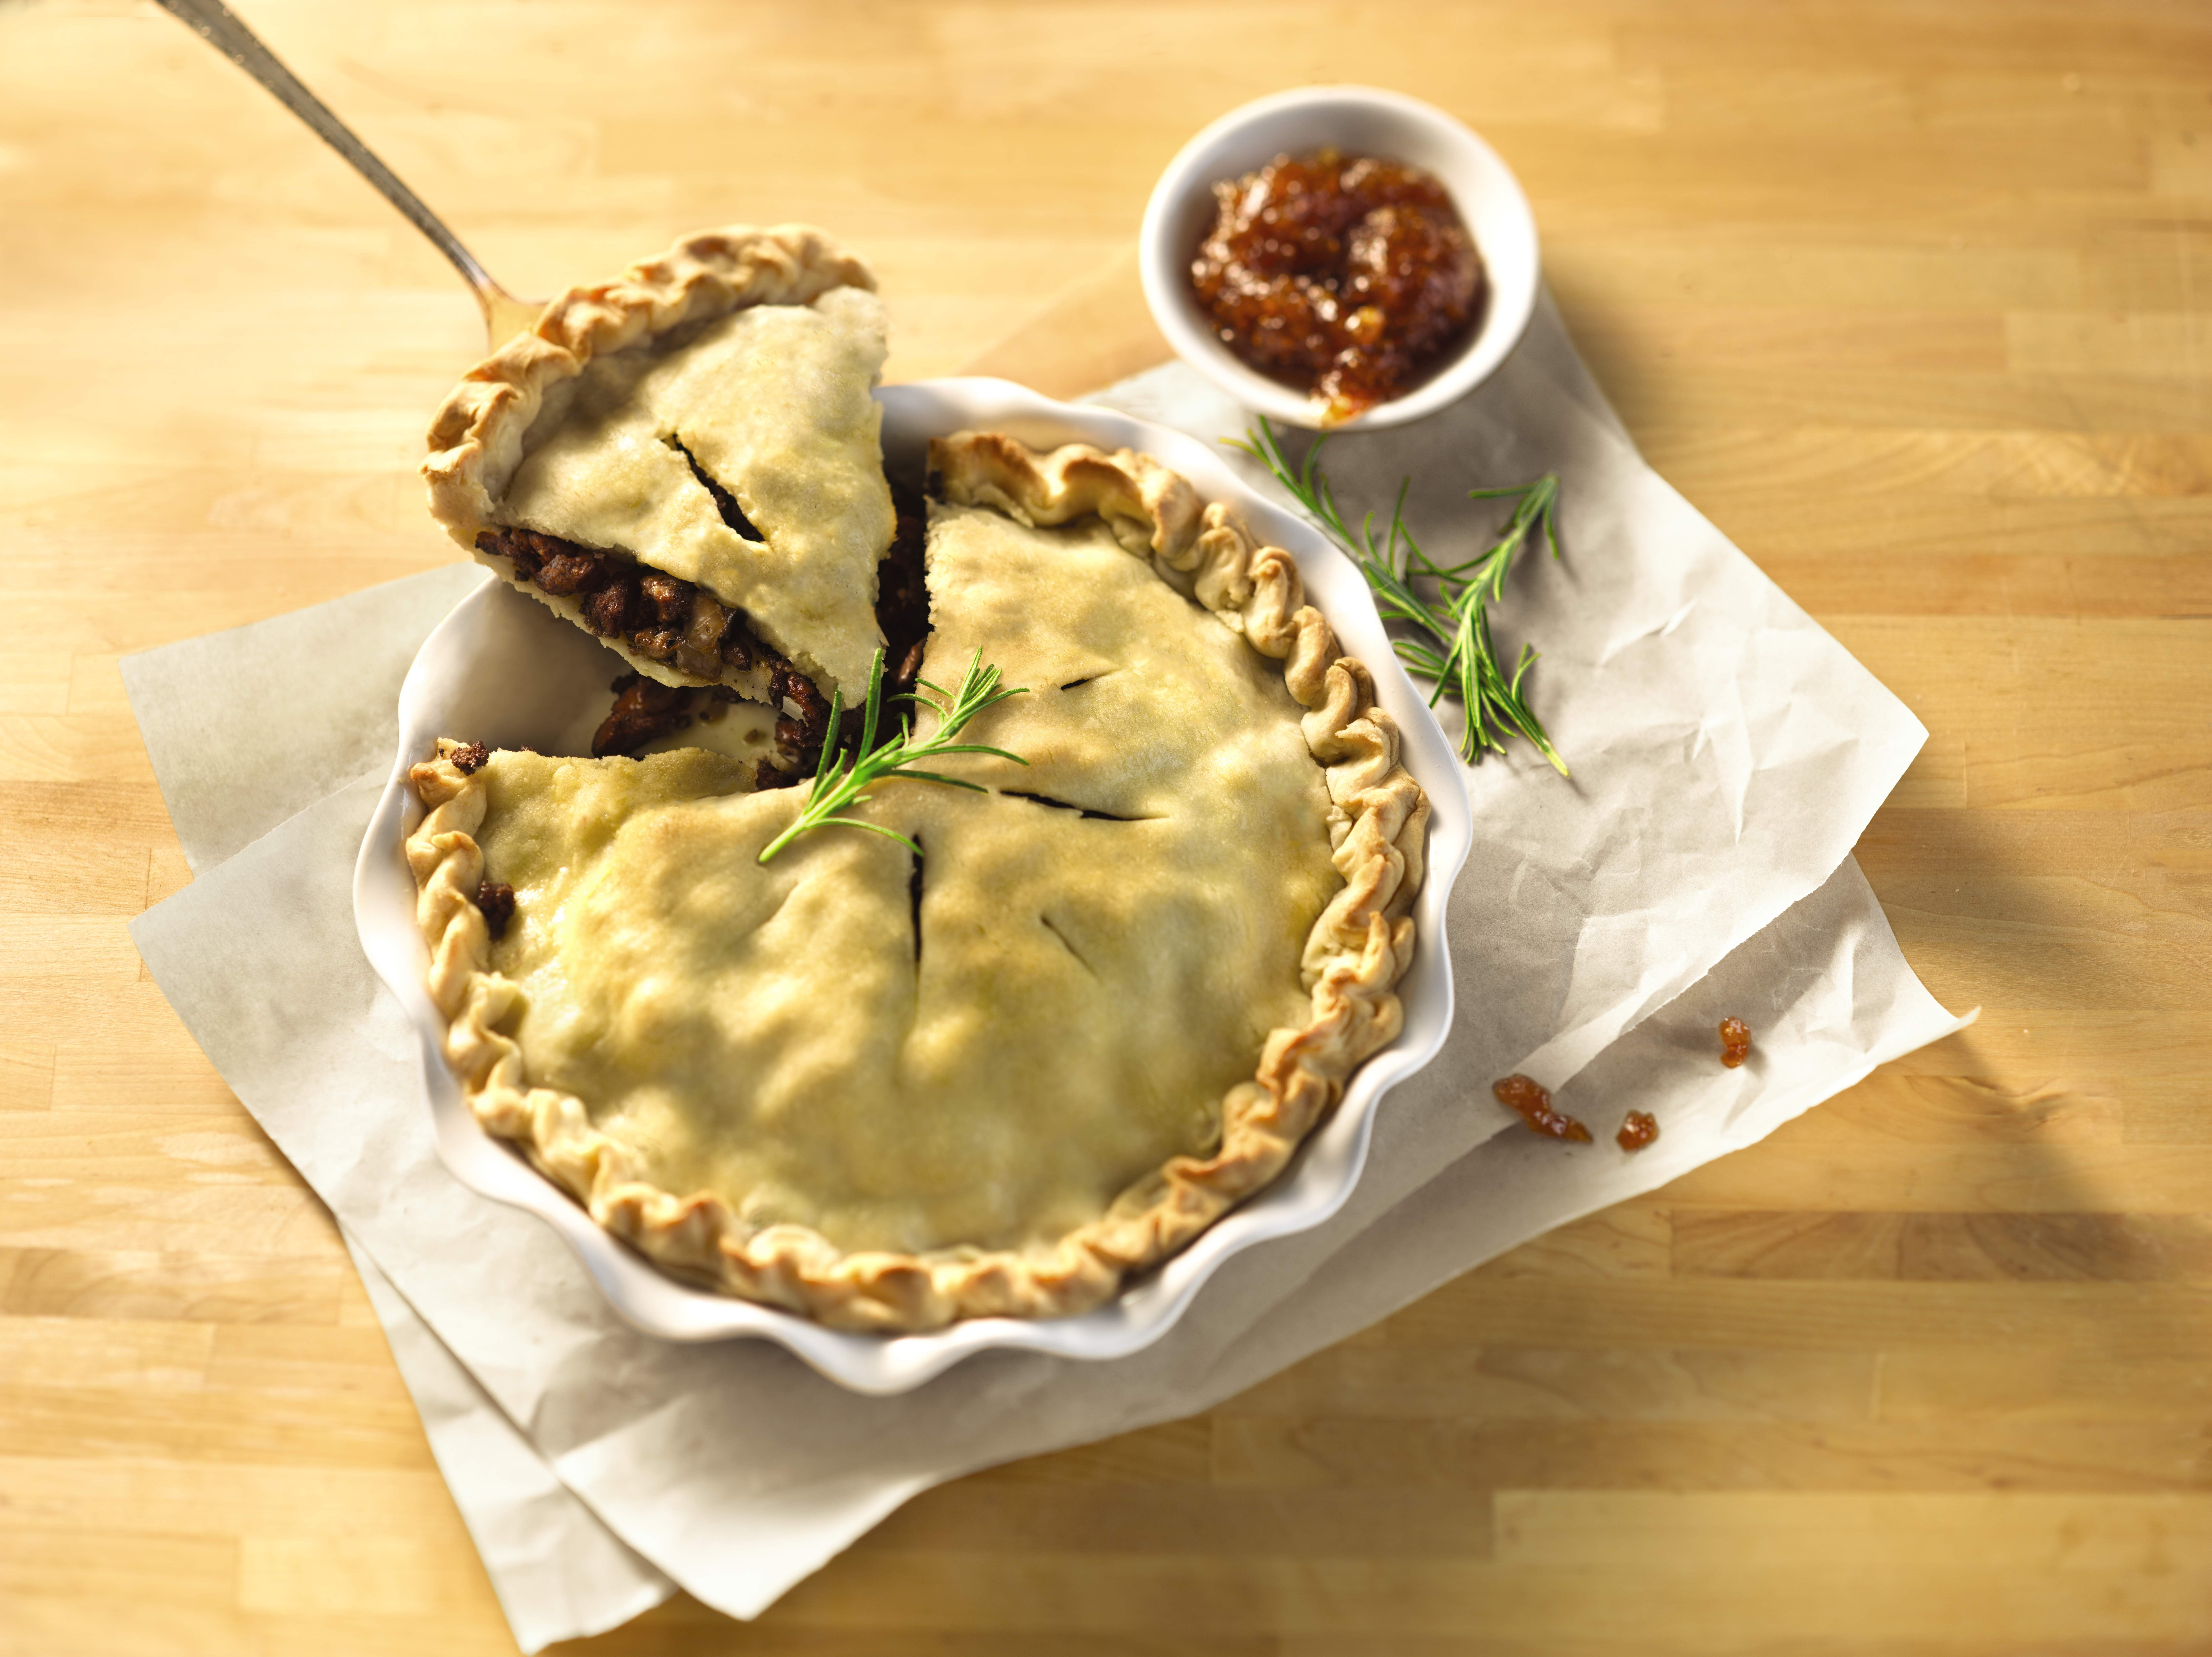 Savory meat pie with beef, pork, and mushrooms.